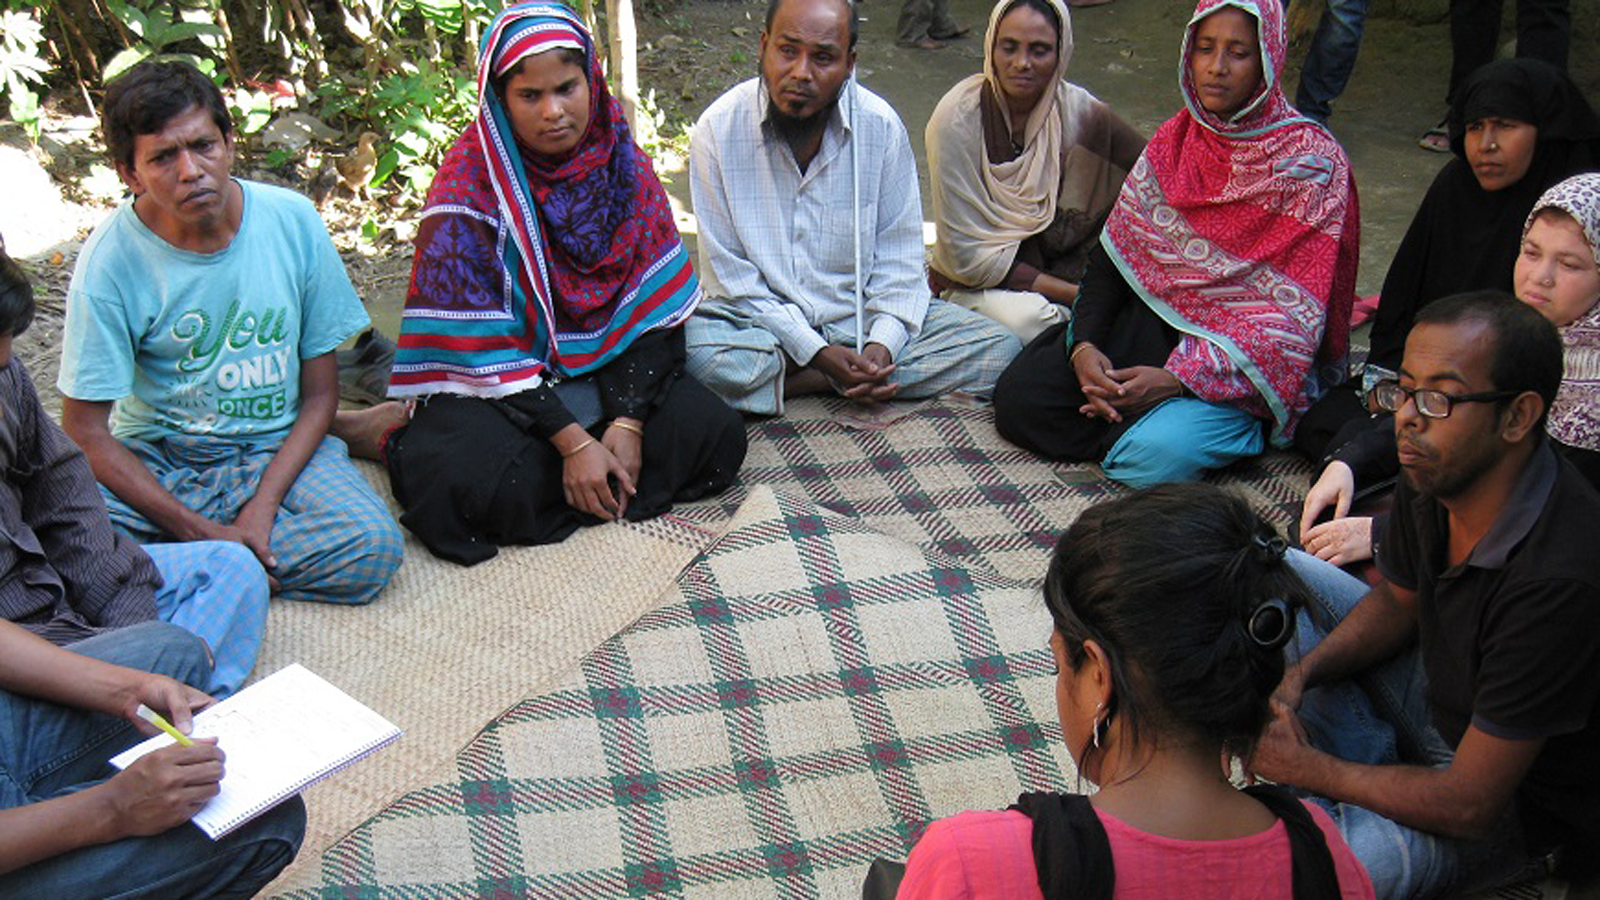 A group of people meet in Bangladesh to discuss the rights of people wtih disabiltieis